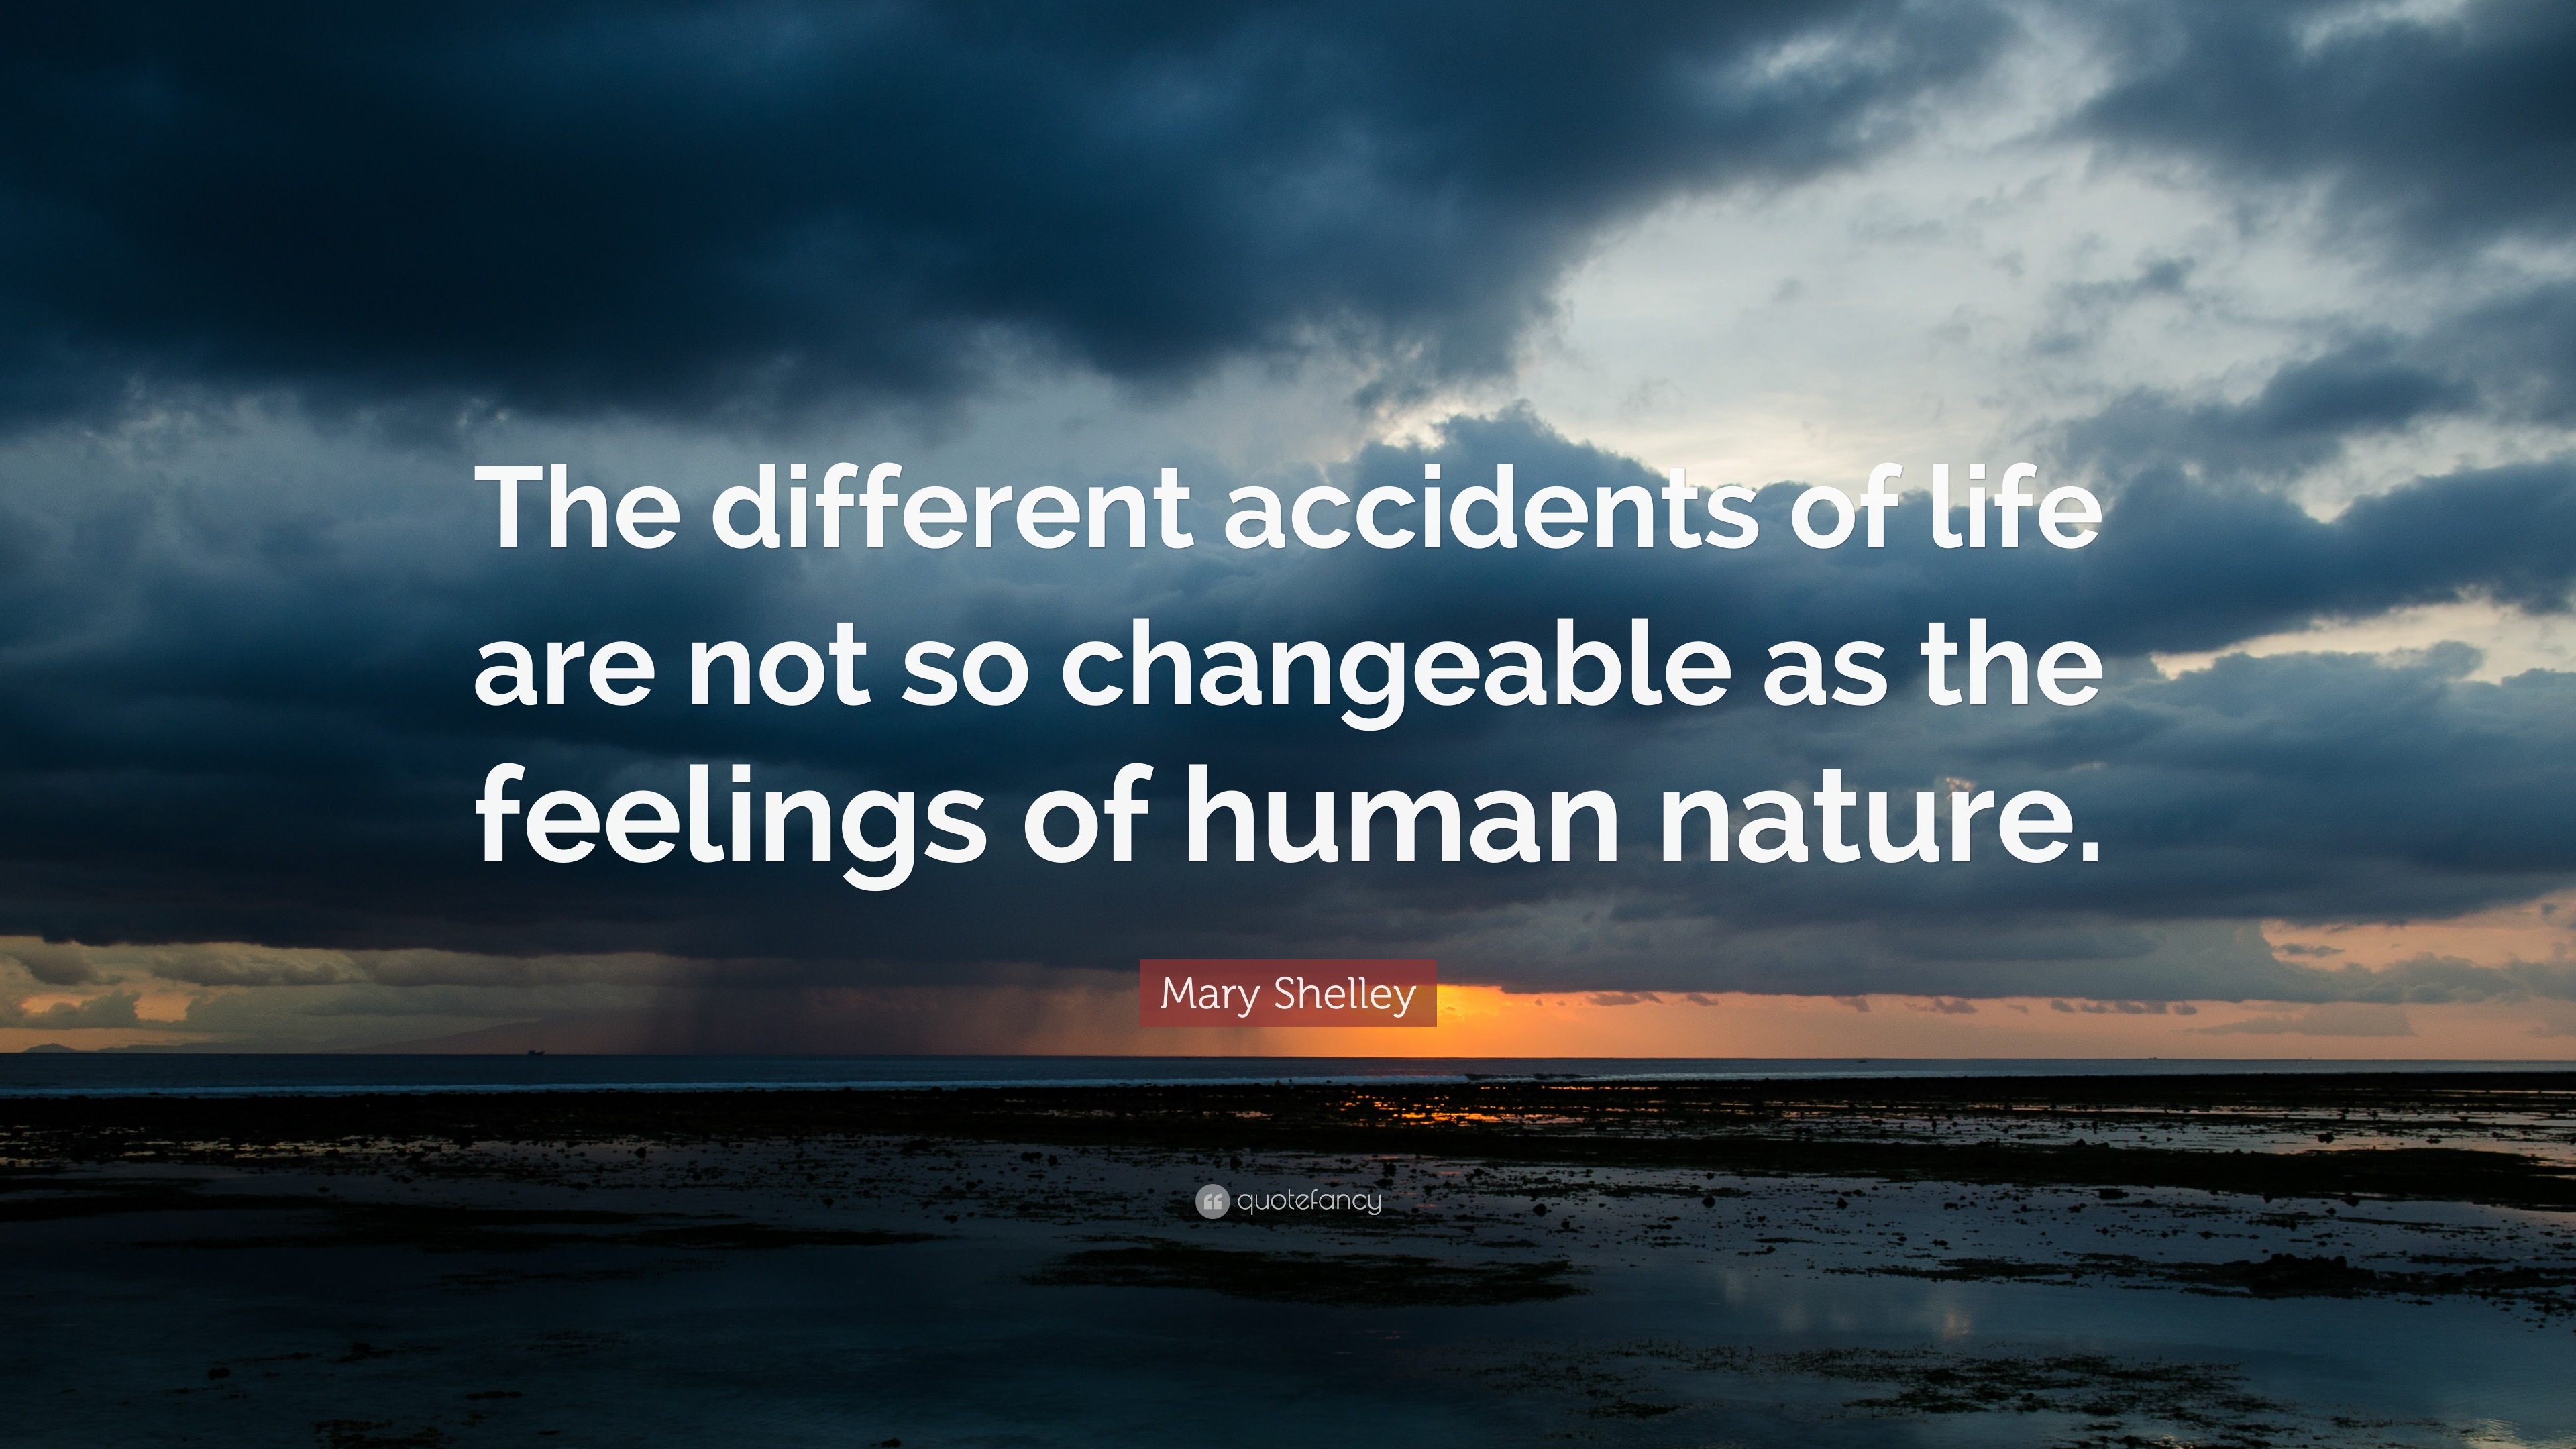 the different accidents of life are not so changeable as the feelings of human nature The different accidents of life are not so changeable as the feelings of human  palaces of nature,' were not  between life and death, felt not,.